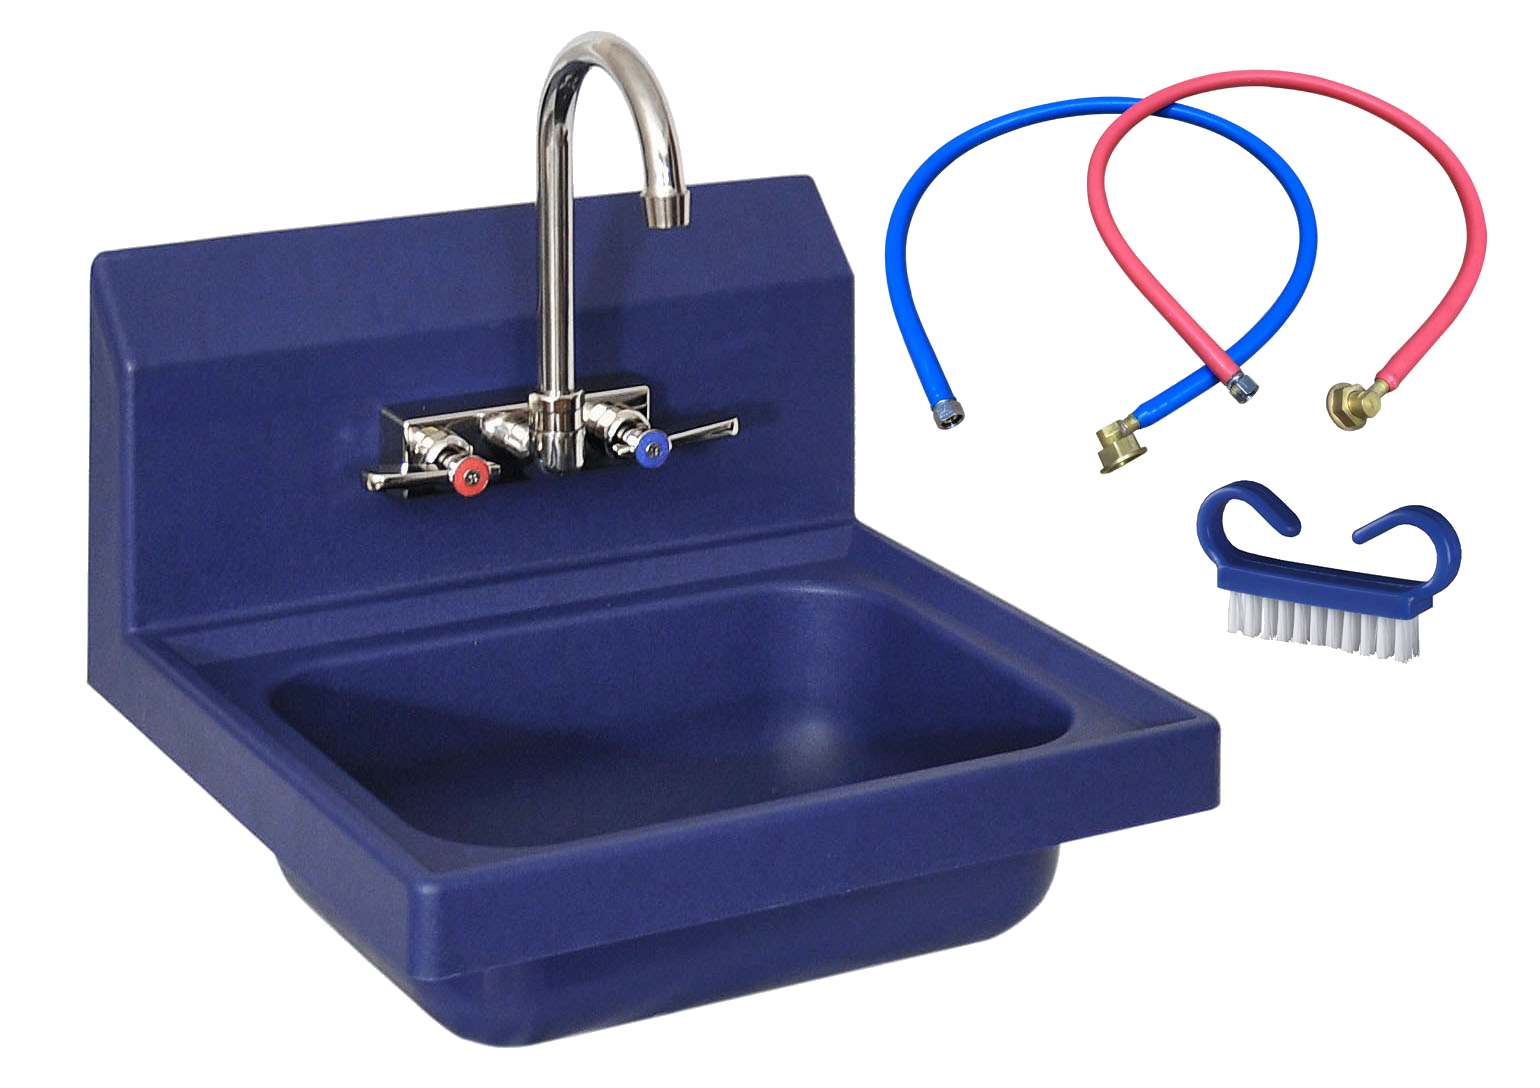 BK Resources APHS-W1410-WBBE sink, hand